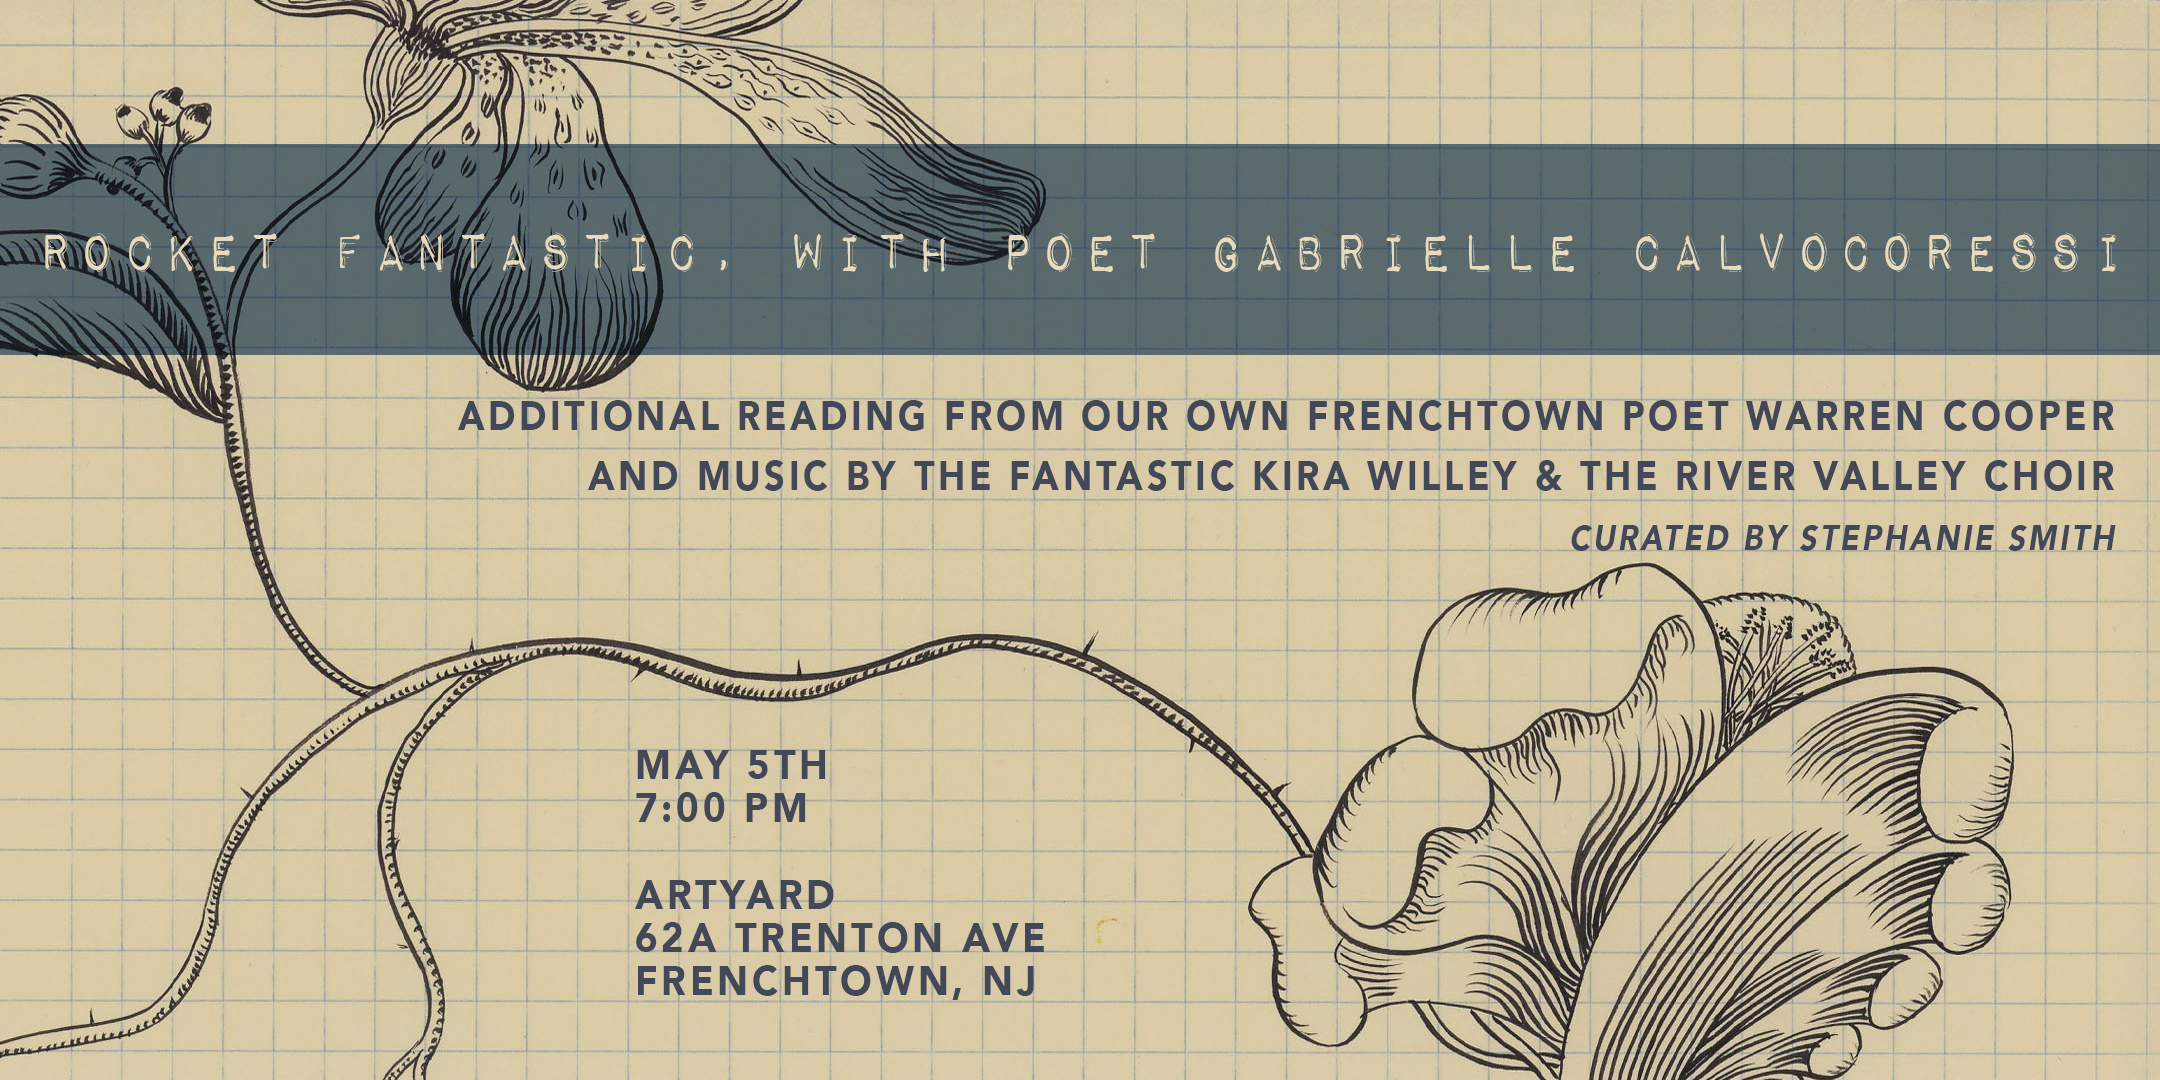 Rocket Fantastic with Poet Gabrielle Calvocoressi (FREE EVENT) @ ArtYard's Theater | Frenchtown | New Jersey | United States